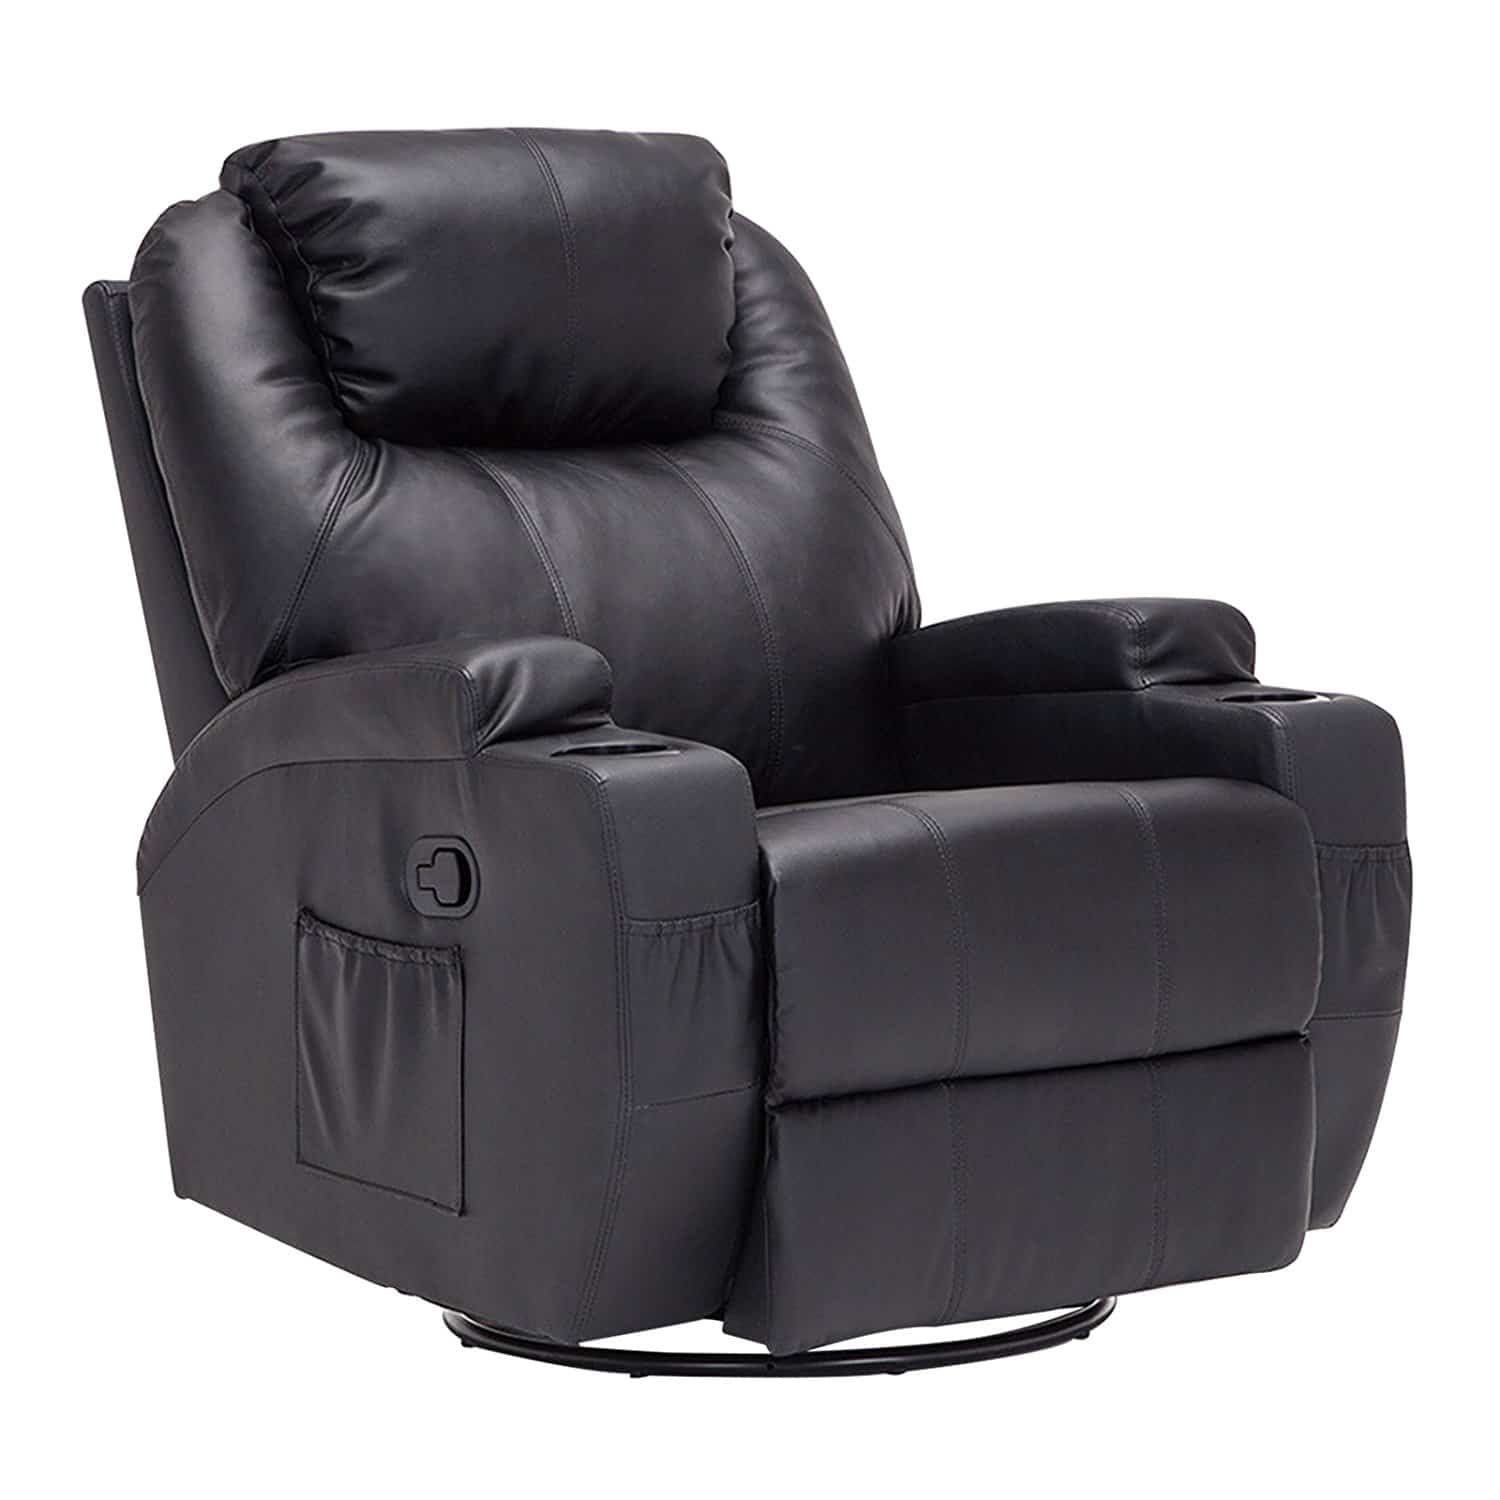 buy leather chairs online best oversized recliners best big recliner best 11873 | Mecor Heated Oversized Recliner Chair Bonded Leather